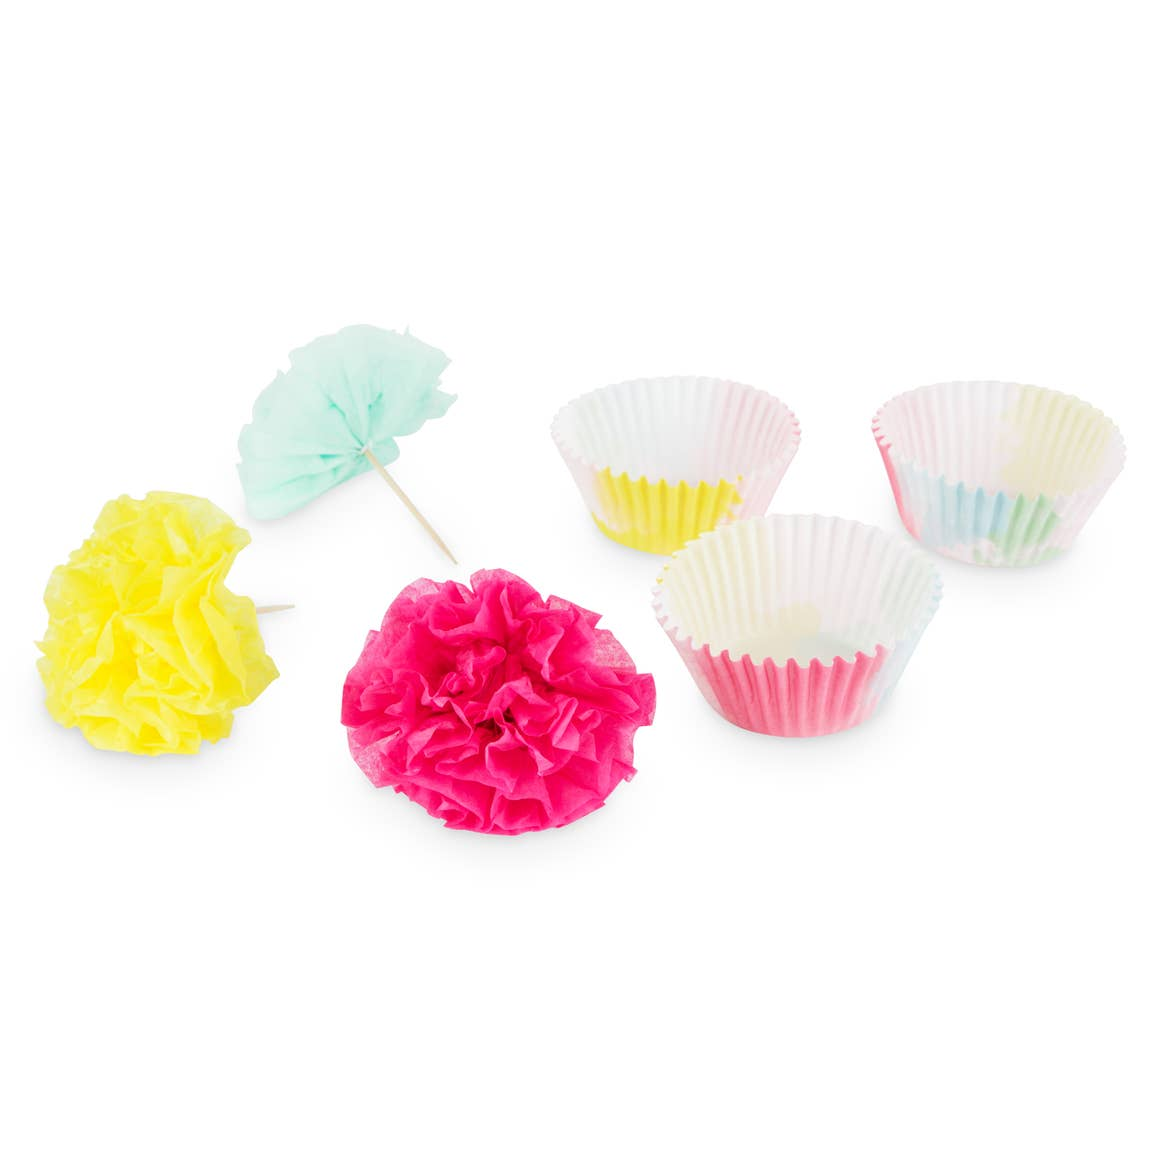 Flower Tissue Cupcake Kit